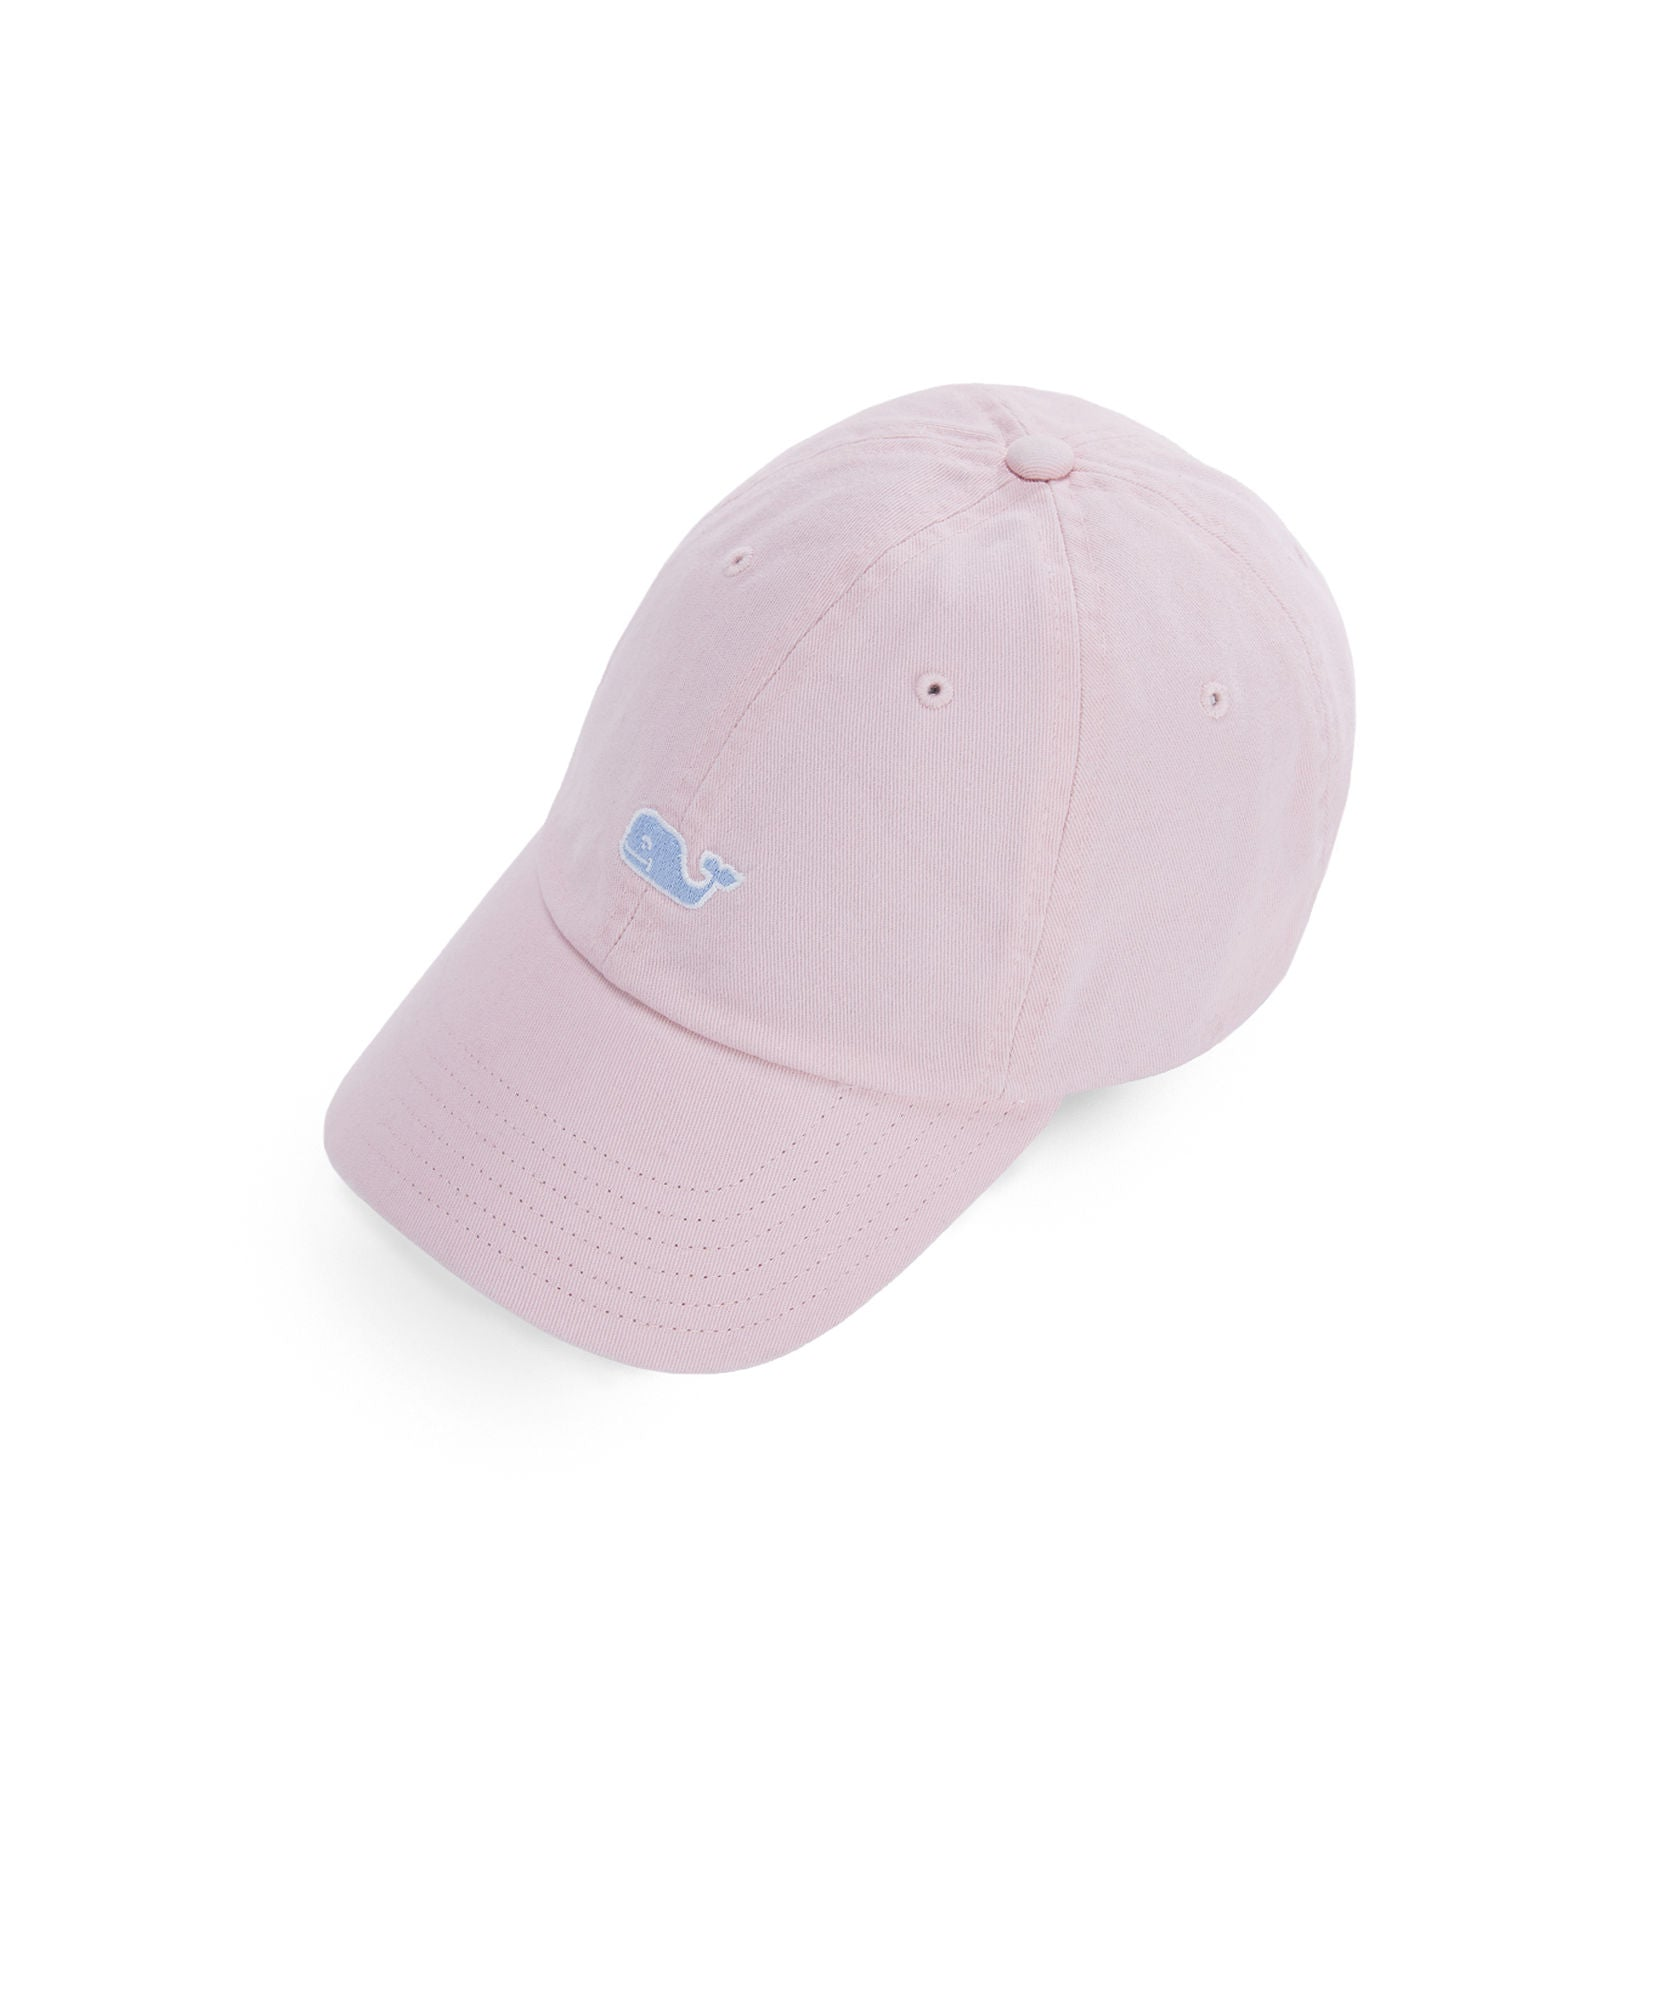 9b5c56e9718 Vineyard Vines Garment Dyed Logo Leather Strap Baseball Hat - Flamingo